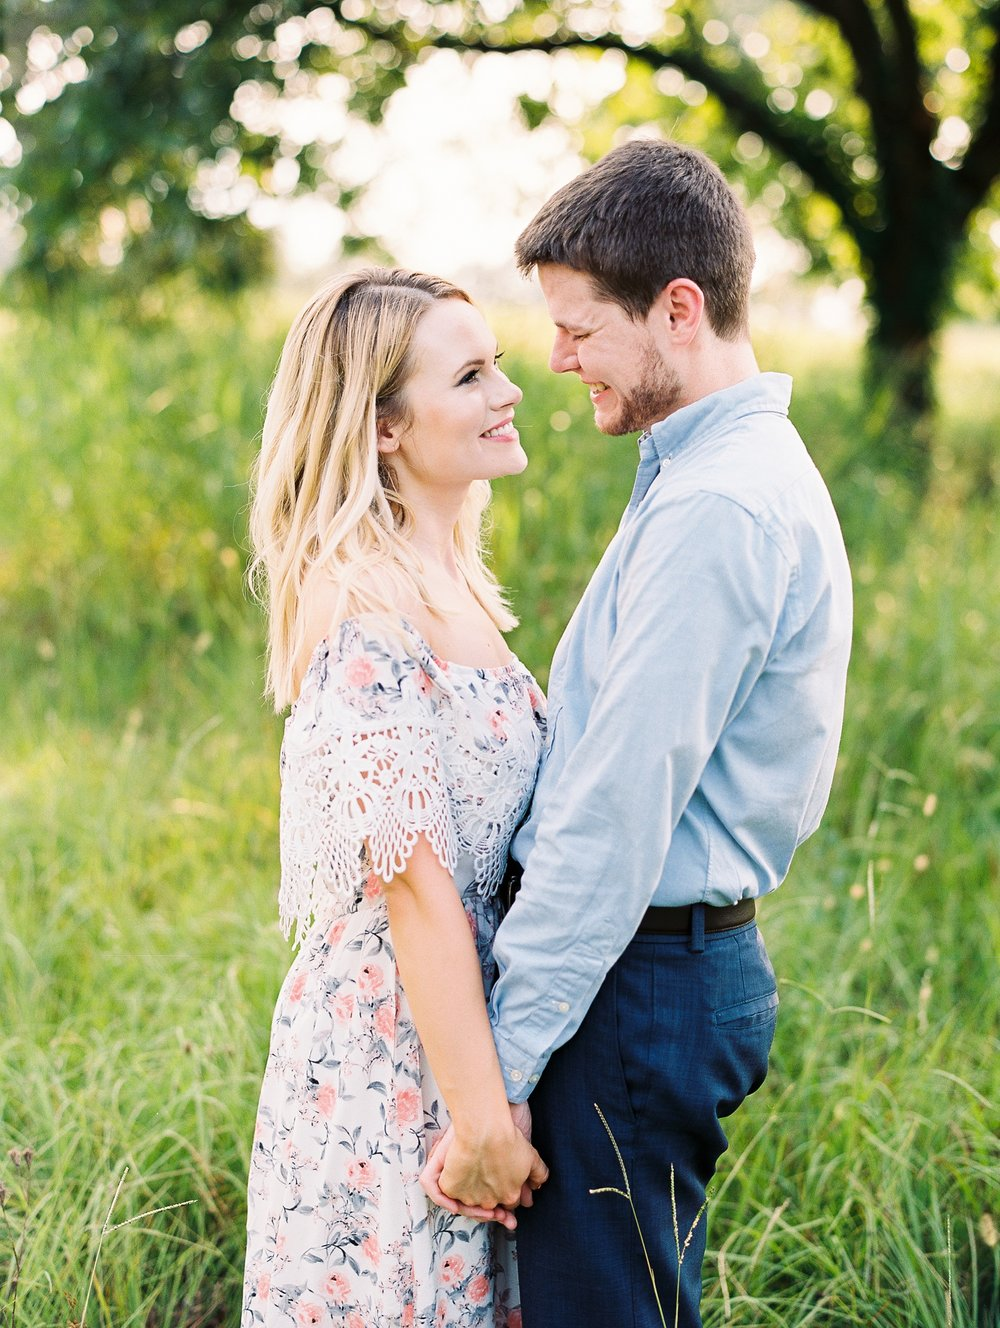 Peach-Orchard-Engagement-Session-Arkansas_0048.jpg